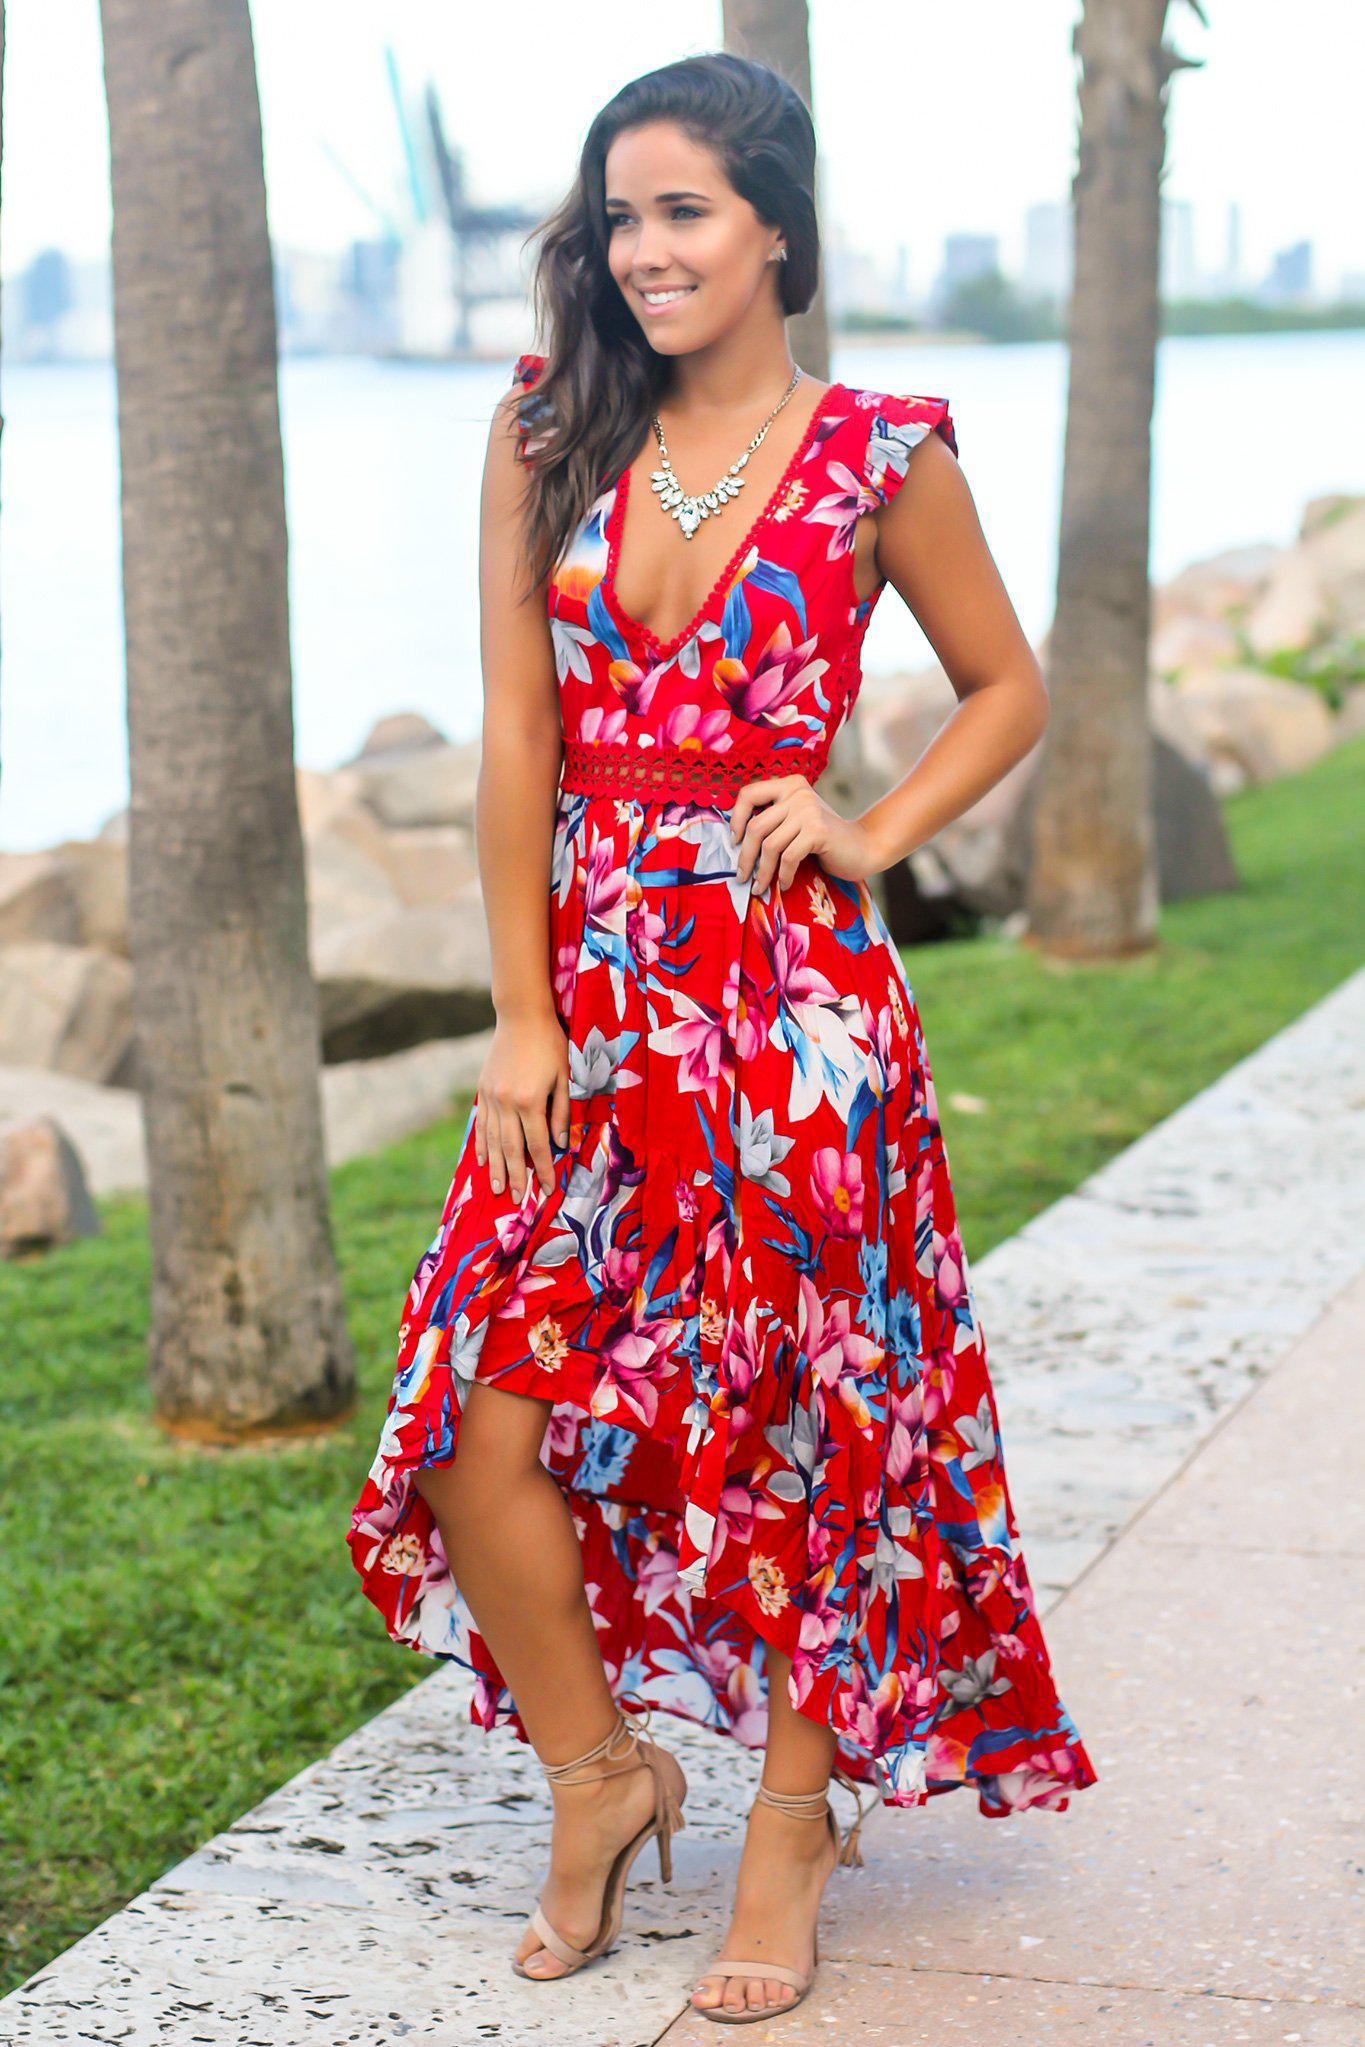 Red and Fuchsia Floral High Low Dress with Crochet Open Back Detail